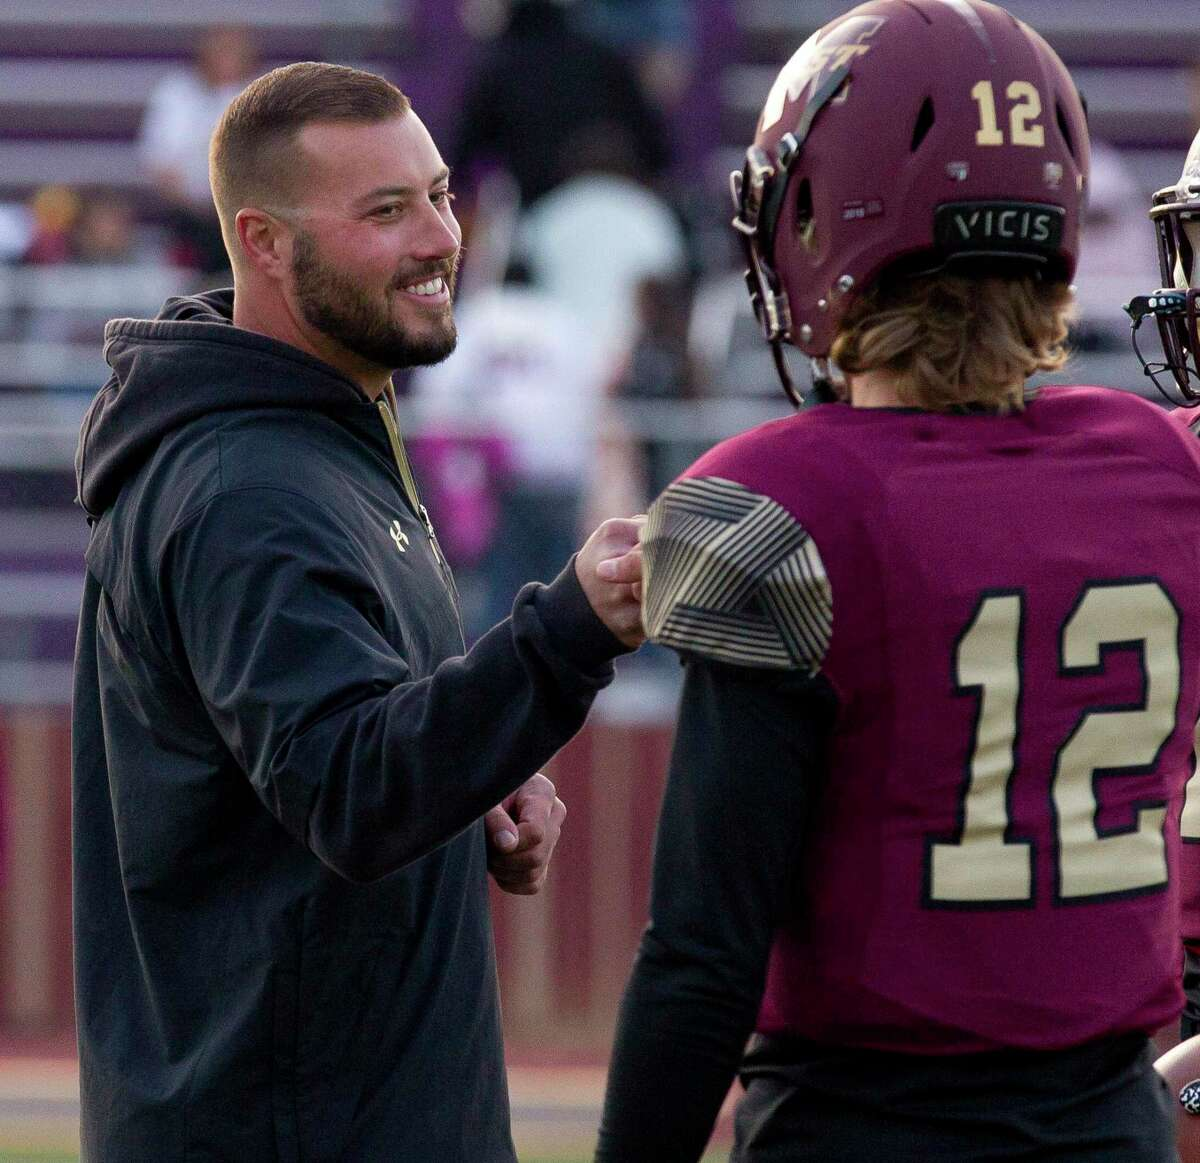 Magnolia West head coach Blake Joseph, shown here in 2019 with quarterback Brock Dalton, is leaving the school after five total seasons. He will join the coaching staff at North Texas.